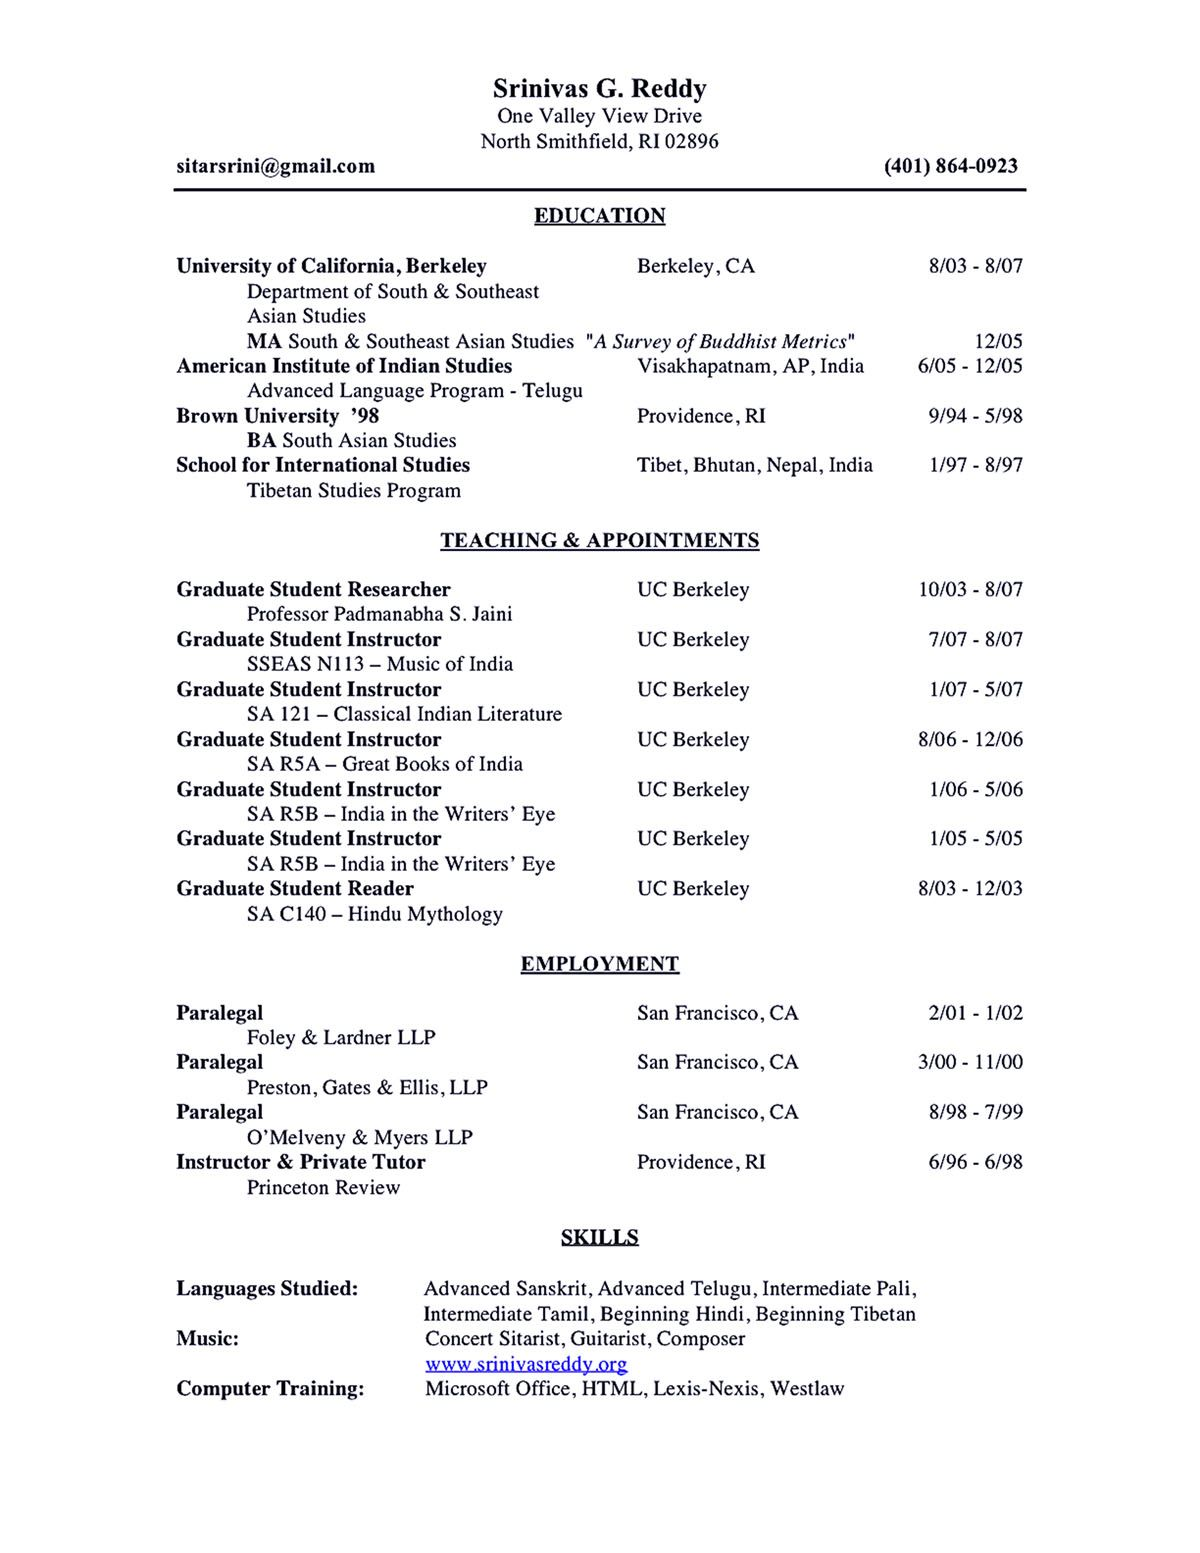 academic resume sample shows you how to make academic resume outstandingly so the resume will get noticed by the employer when it gets noticed - Academic Resume Template